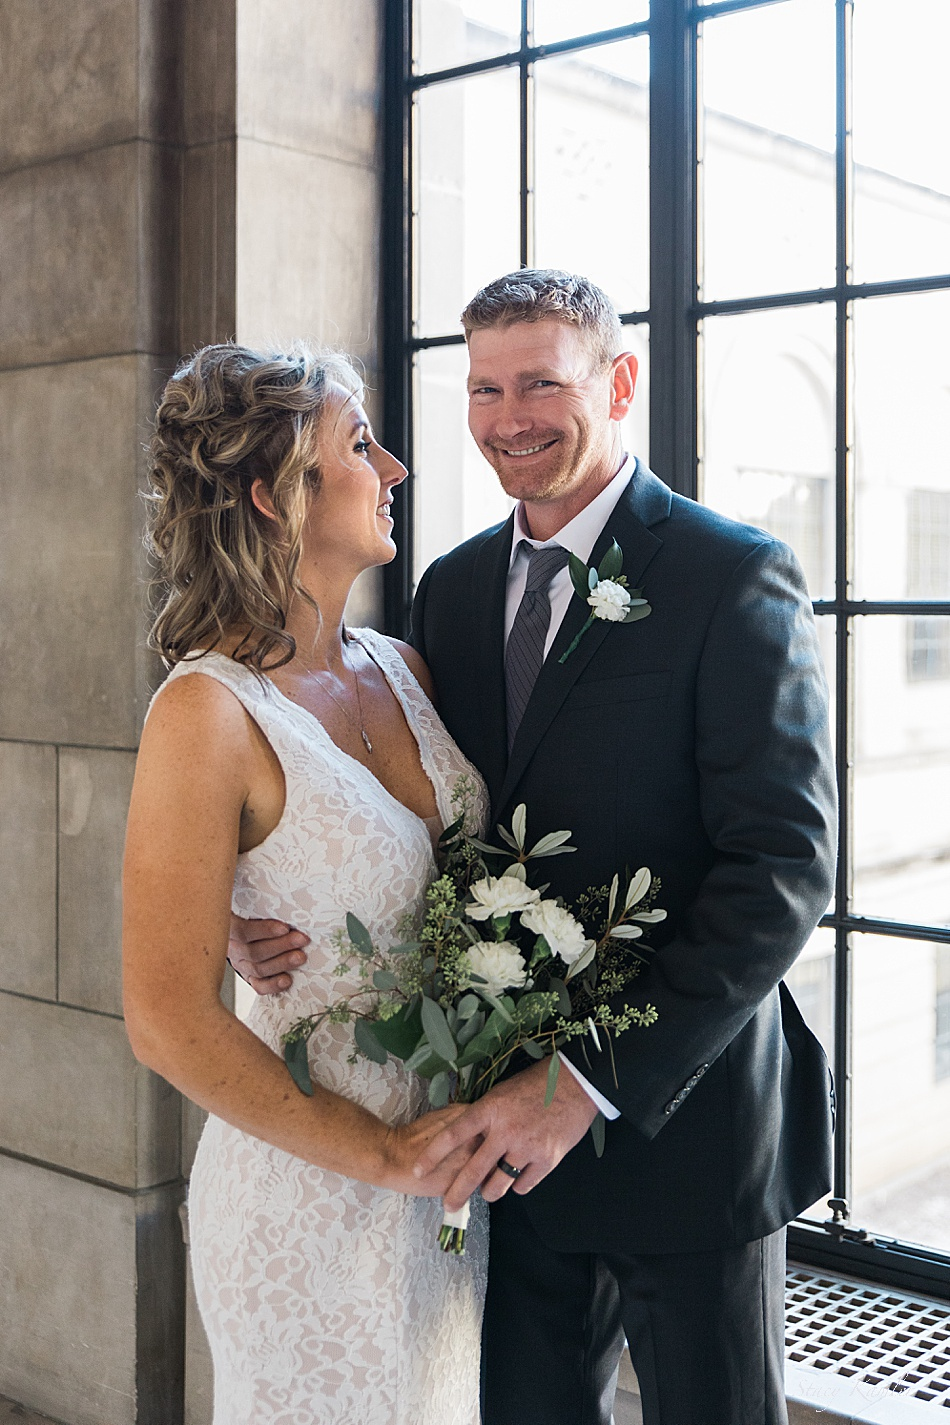 Bride and Groom photos after an intimate wedding at the state capitol